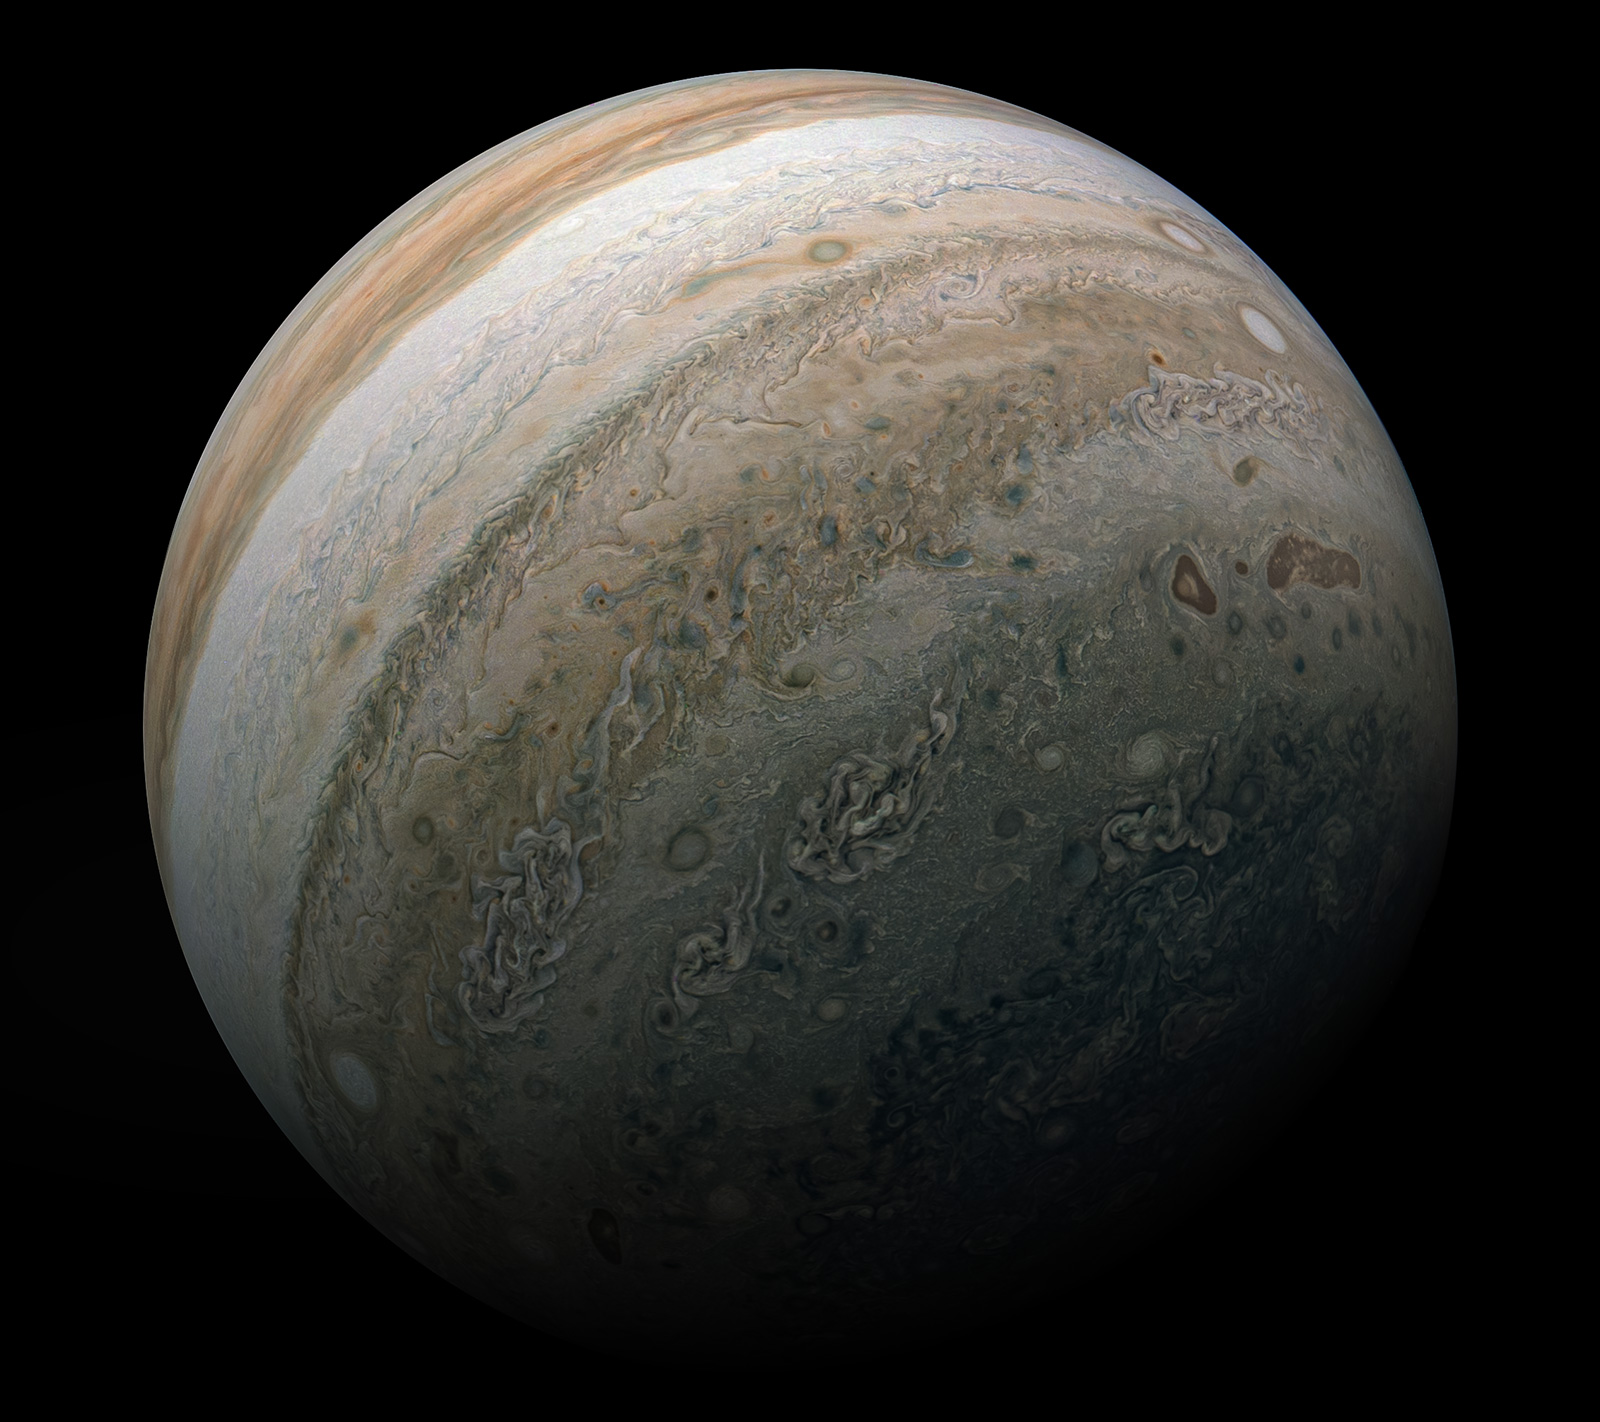 NASA image of Jupiter from the Juno mission